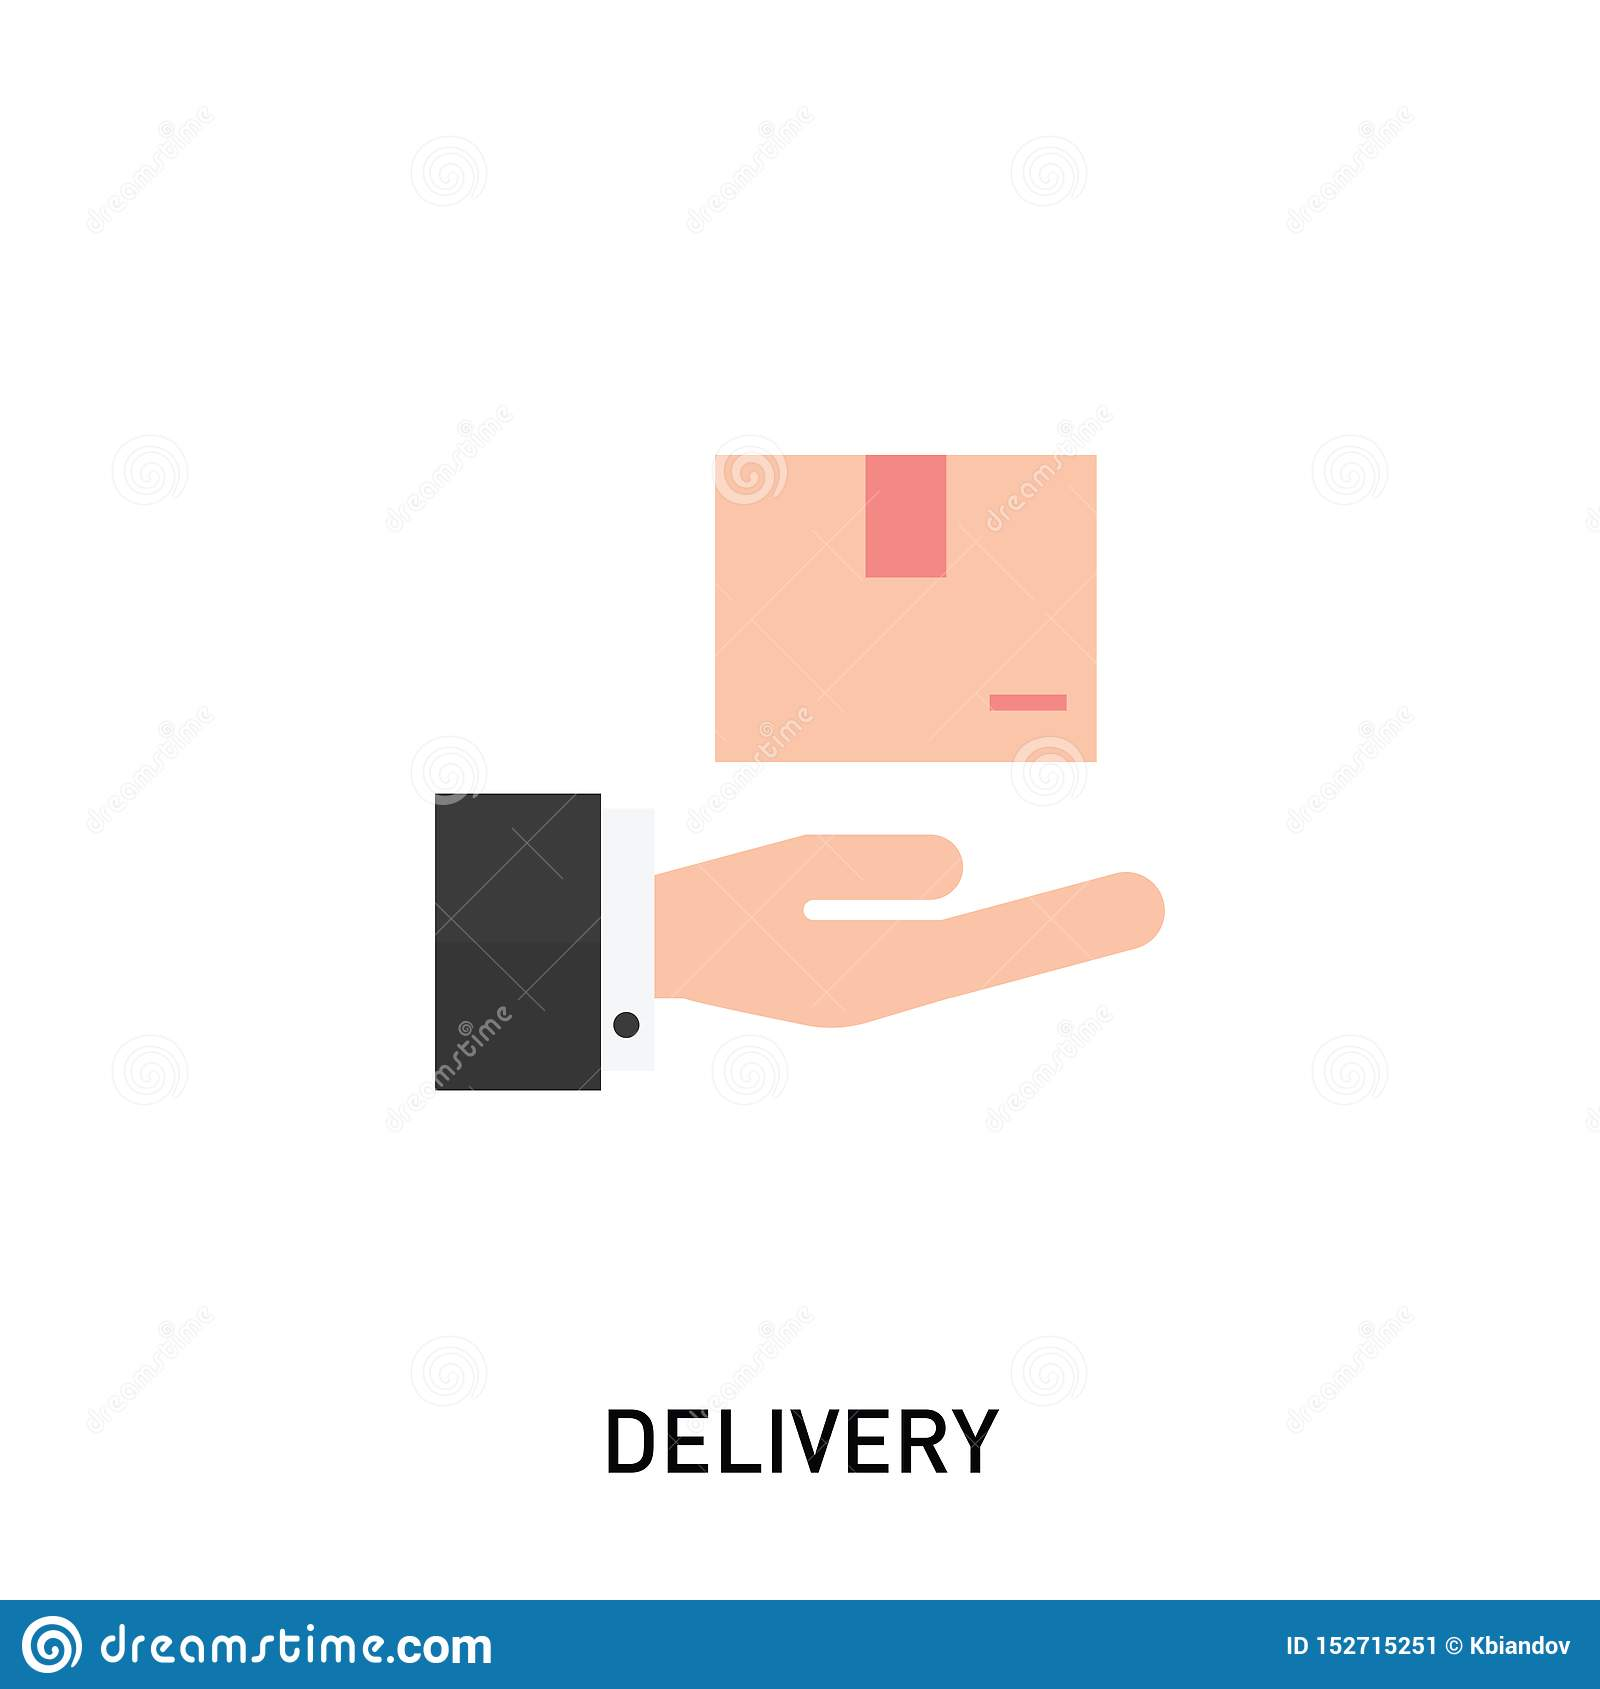 Delivery icon. Hand holding a box. Vector illustration in modern flat style.